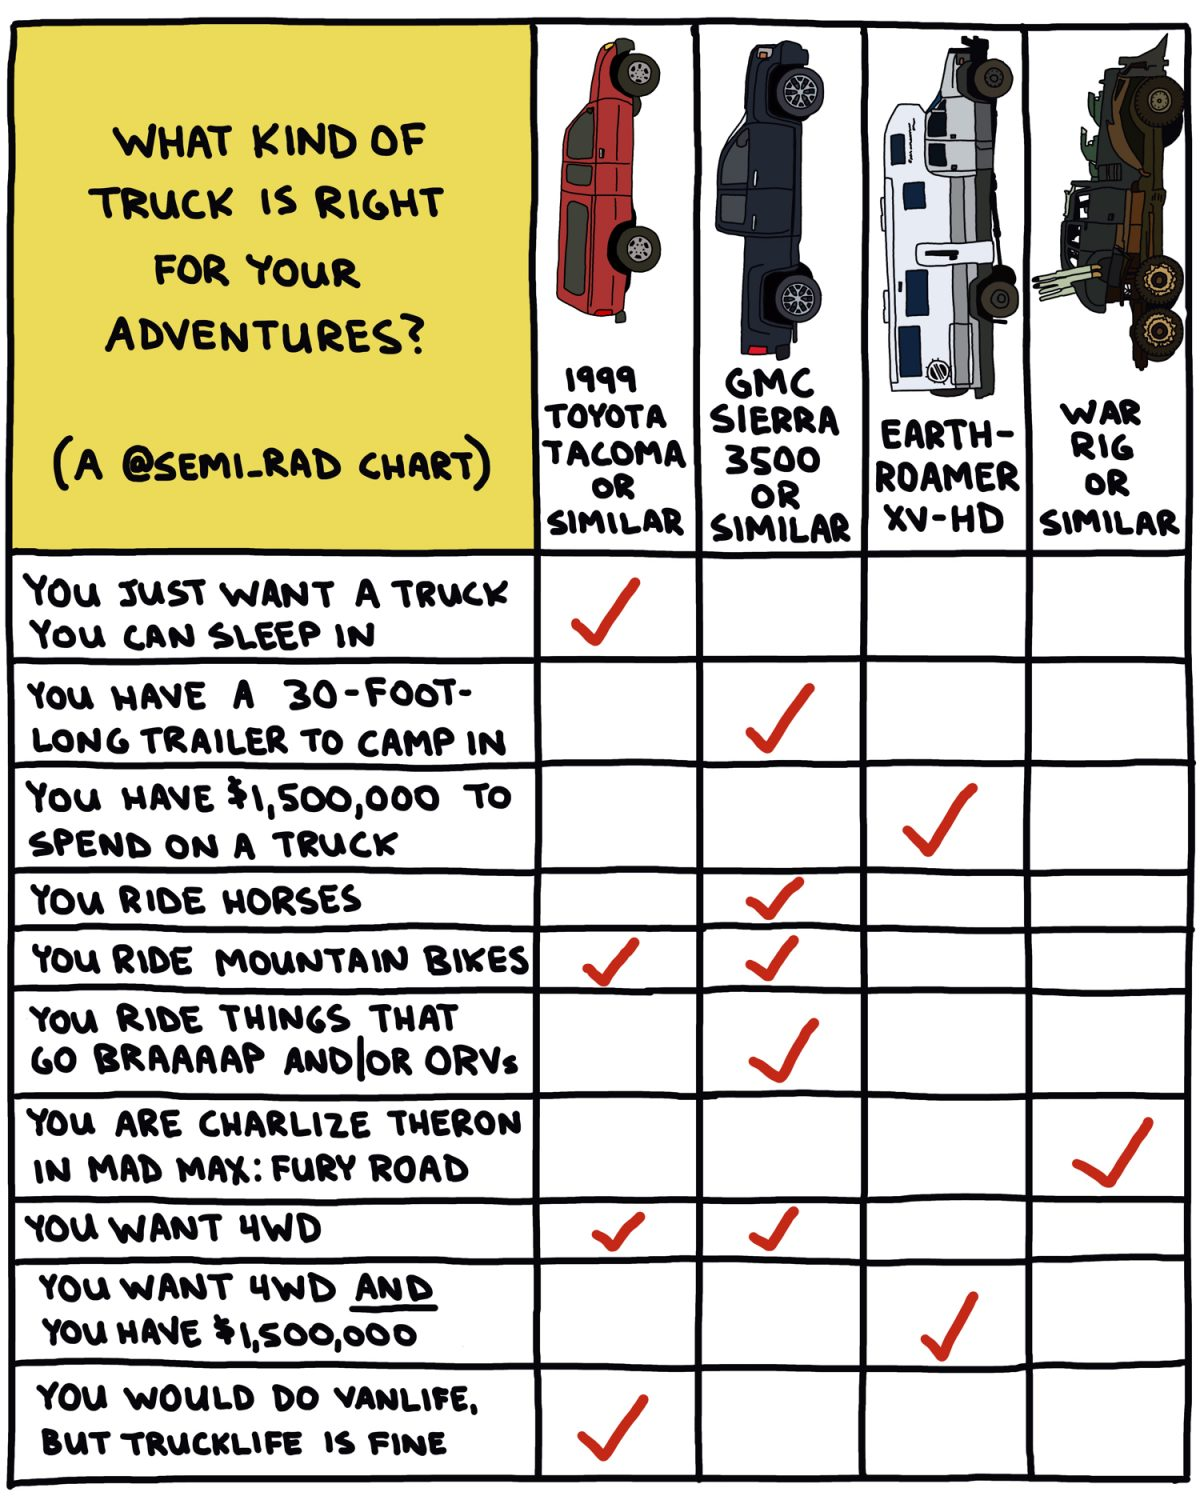 hand-drawn chart comparing trucks for adventure